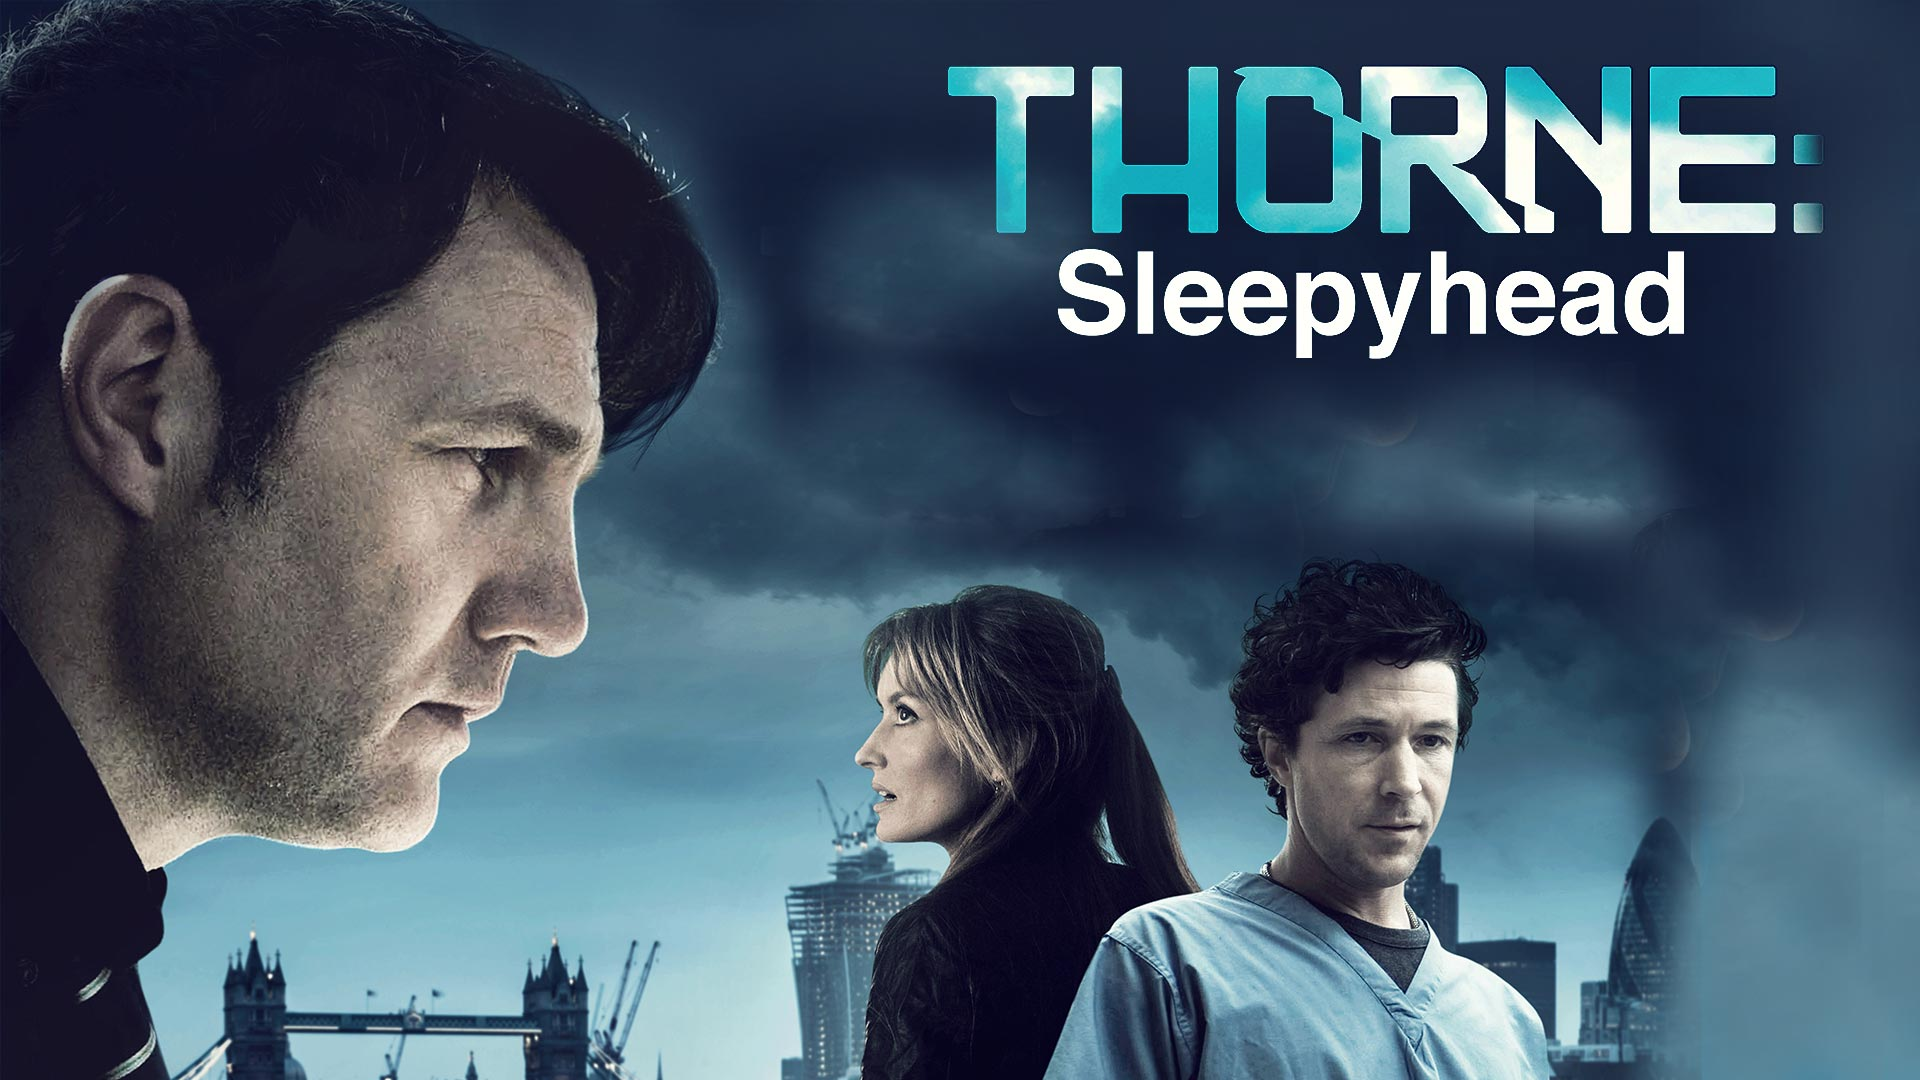 Thorne: Sleepyhead